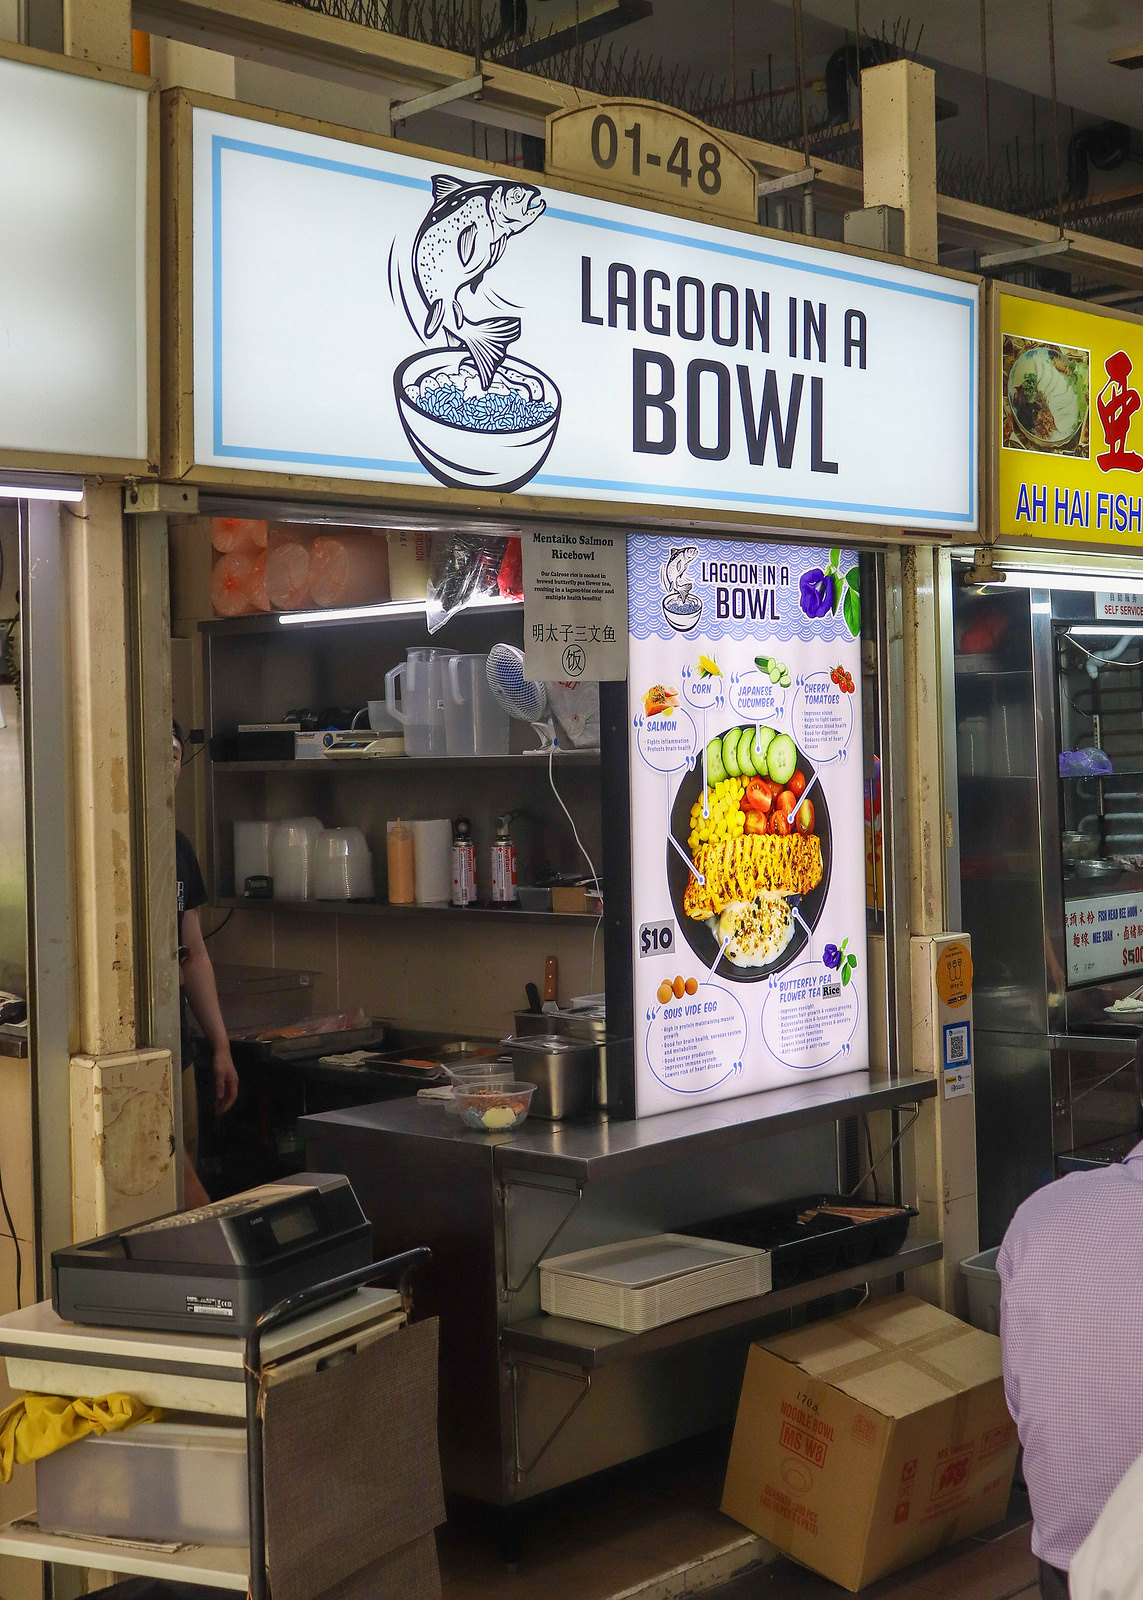 amoy street food centre Lagoon in a Bowl storefront